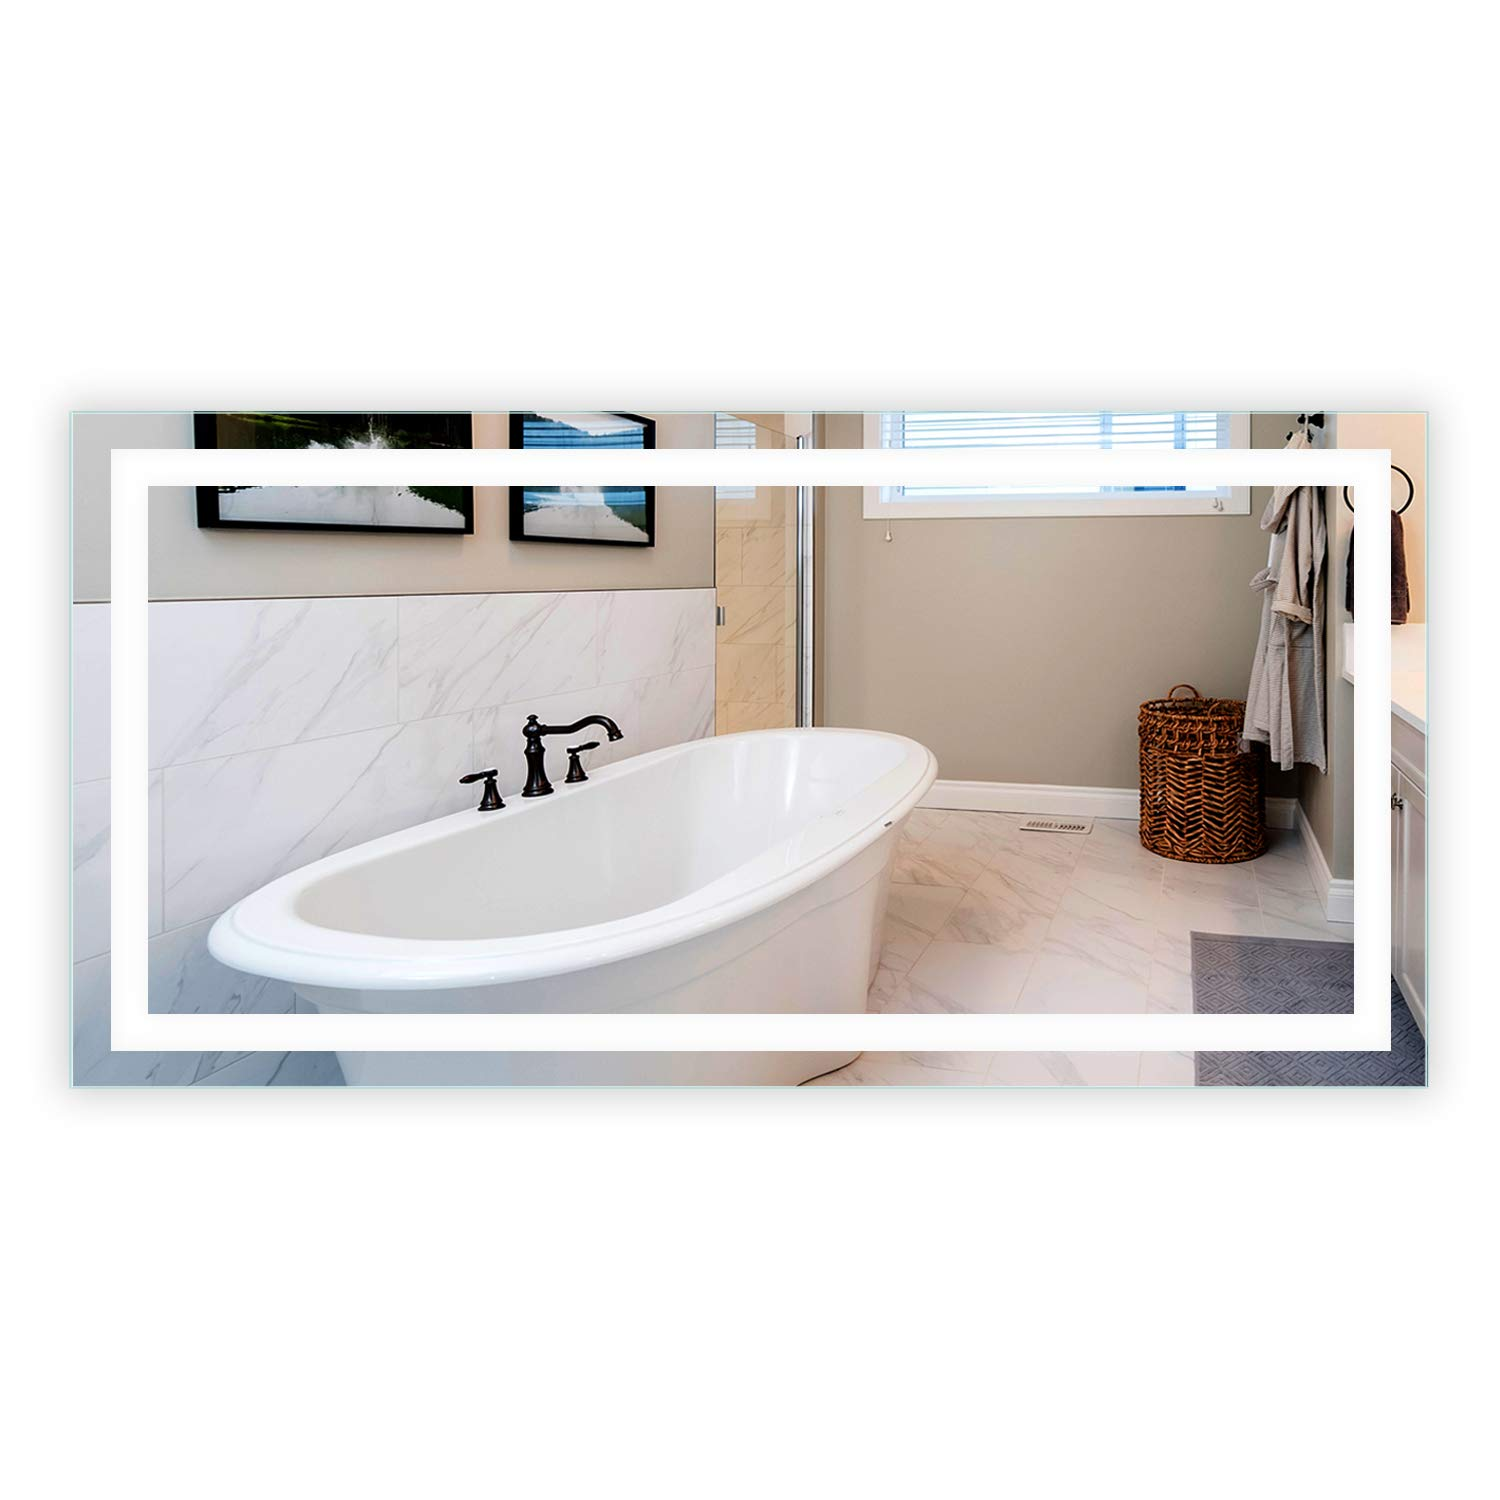 LED Front-Lighted Bathroom Vanity Mirror: 72'' Wide x 36'' Tall - Commercial Grade - Rectangular - Wall-Mounted by Mirrors and Marble